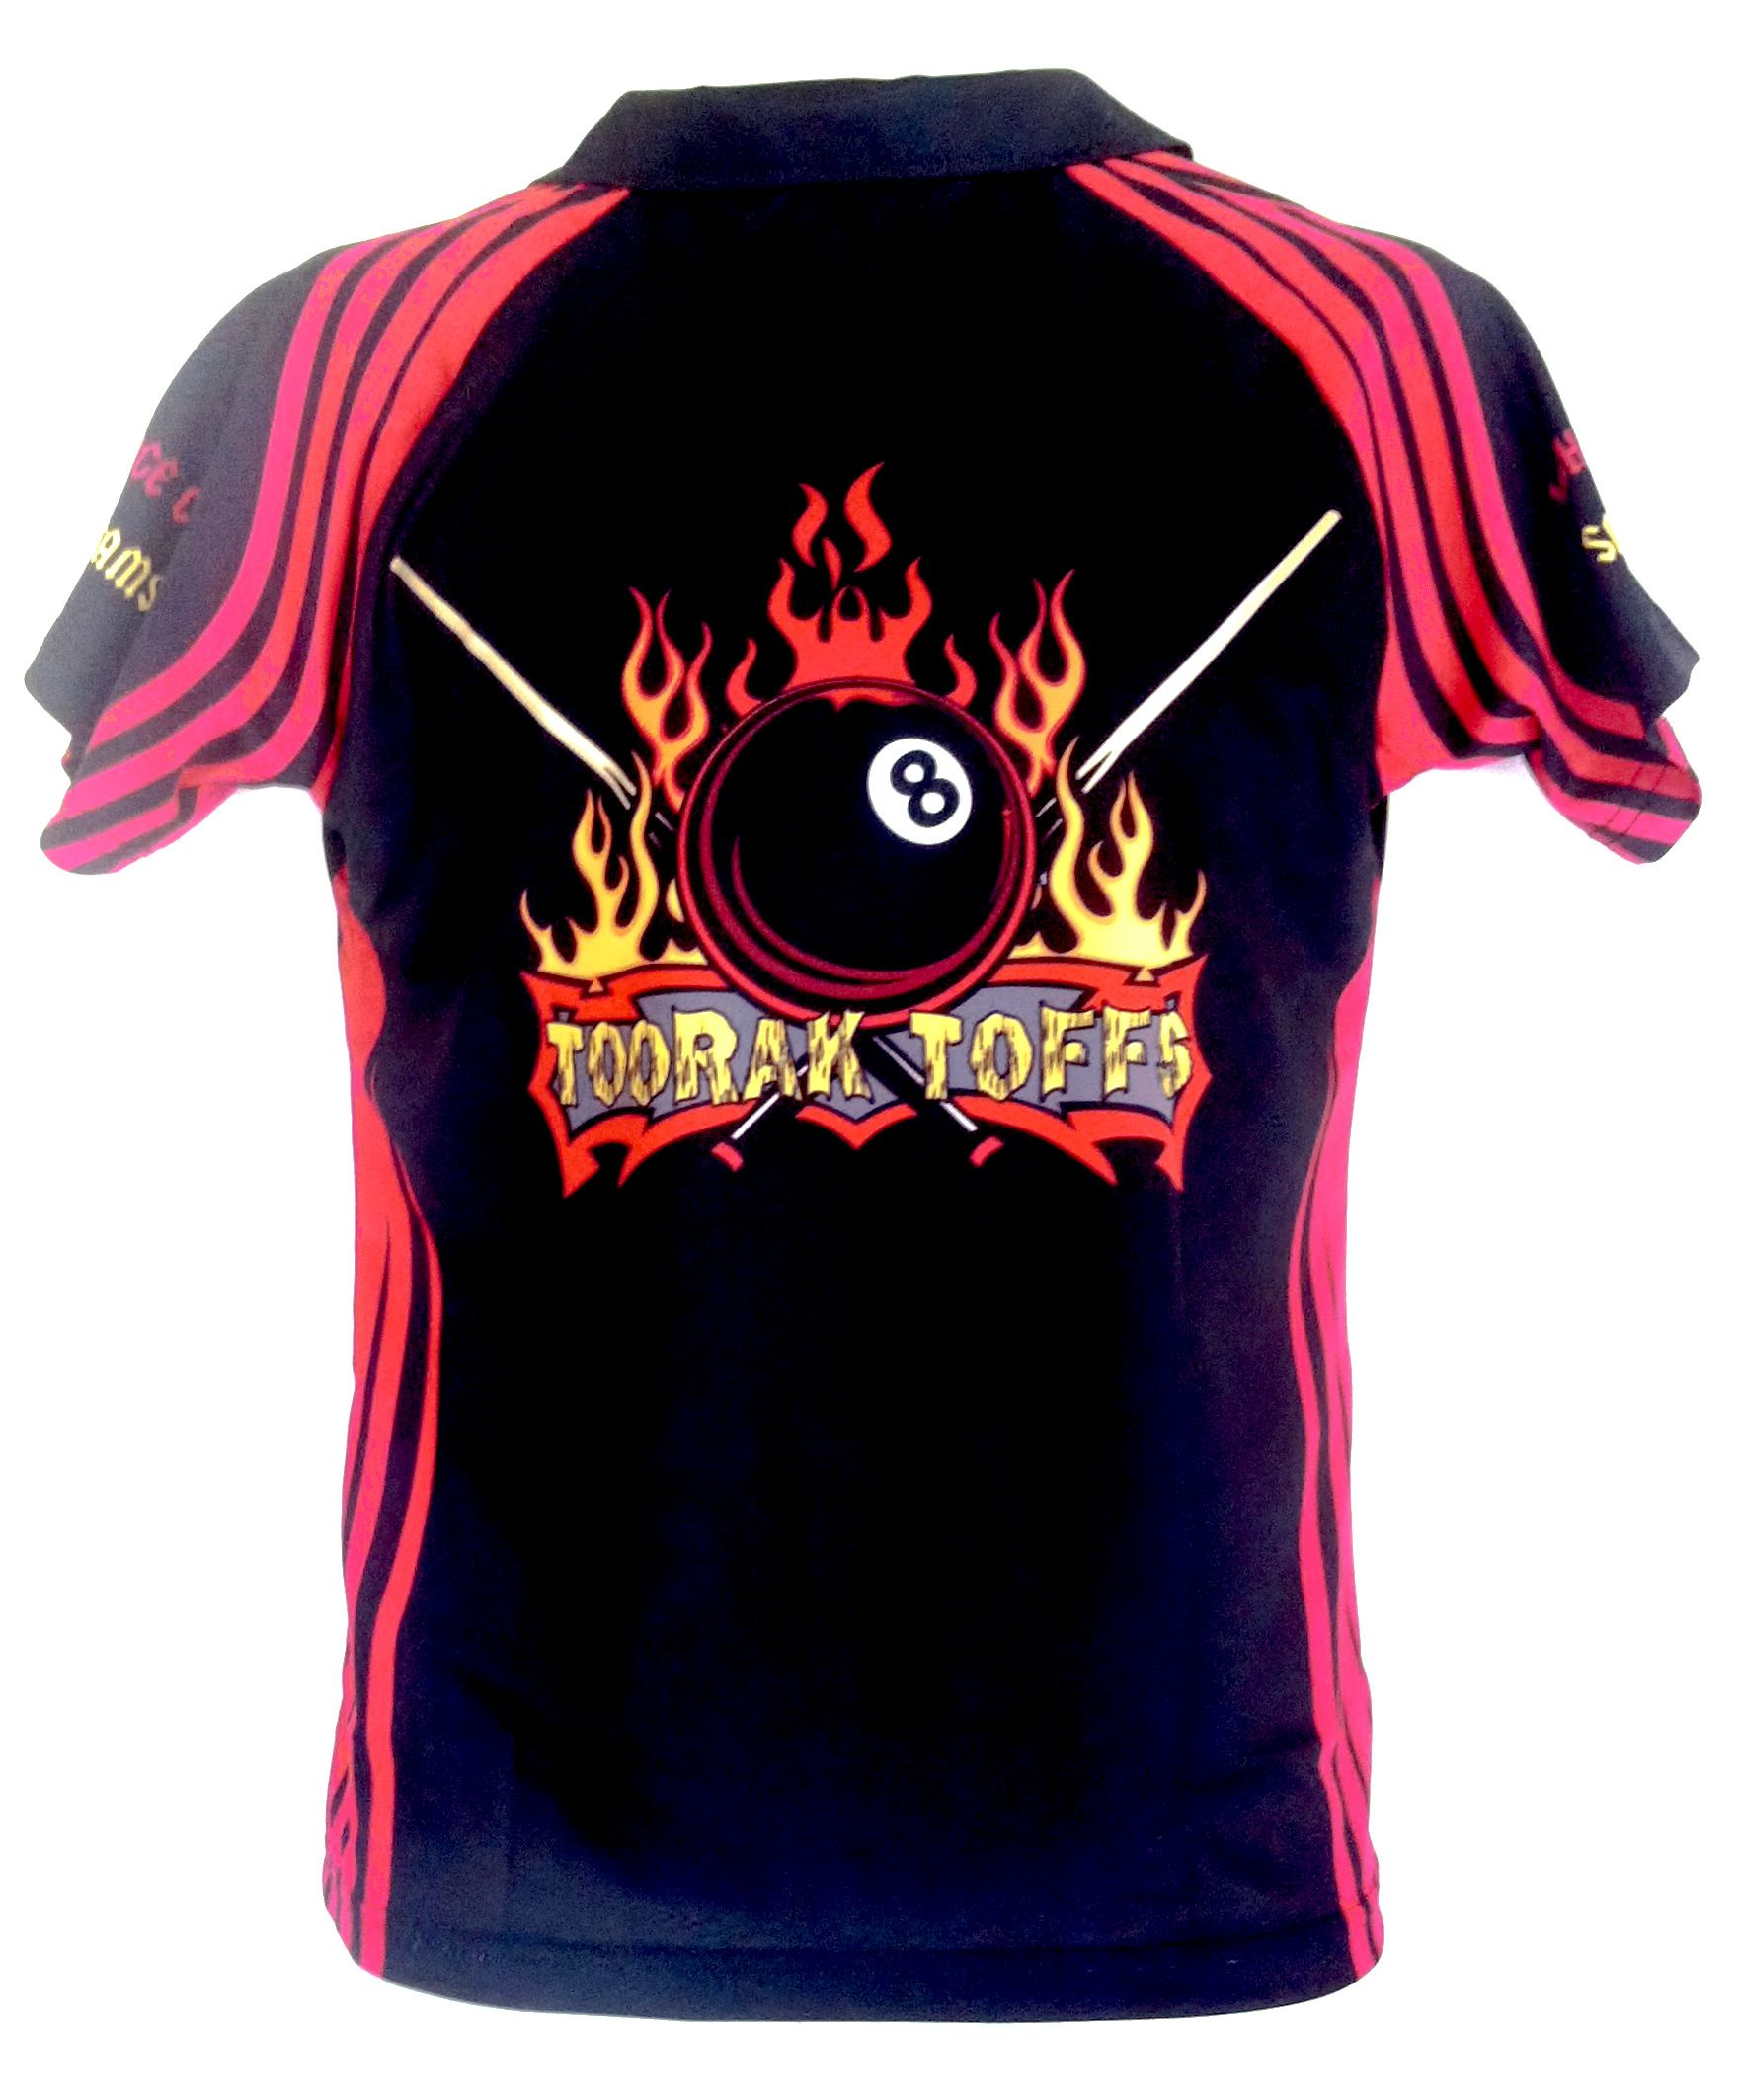 Shirt design on sleeve